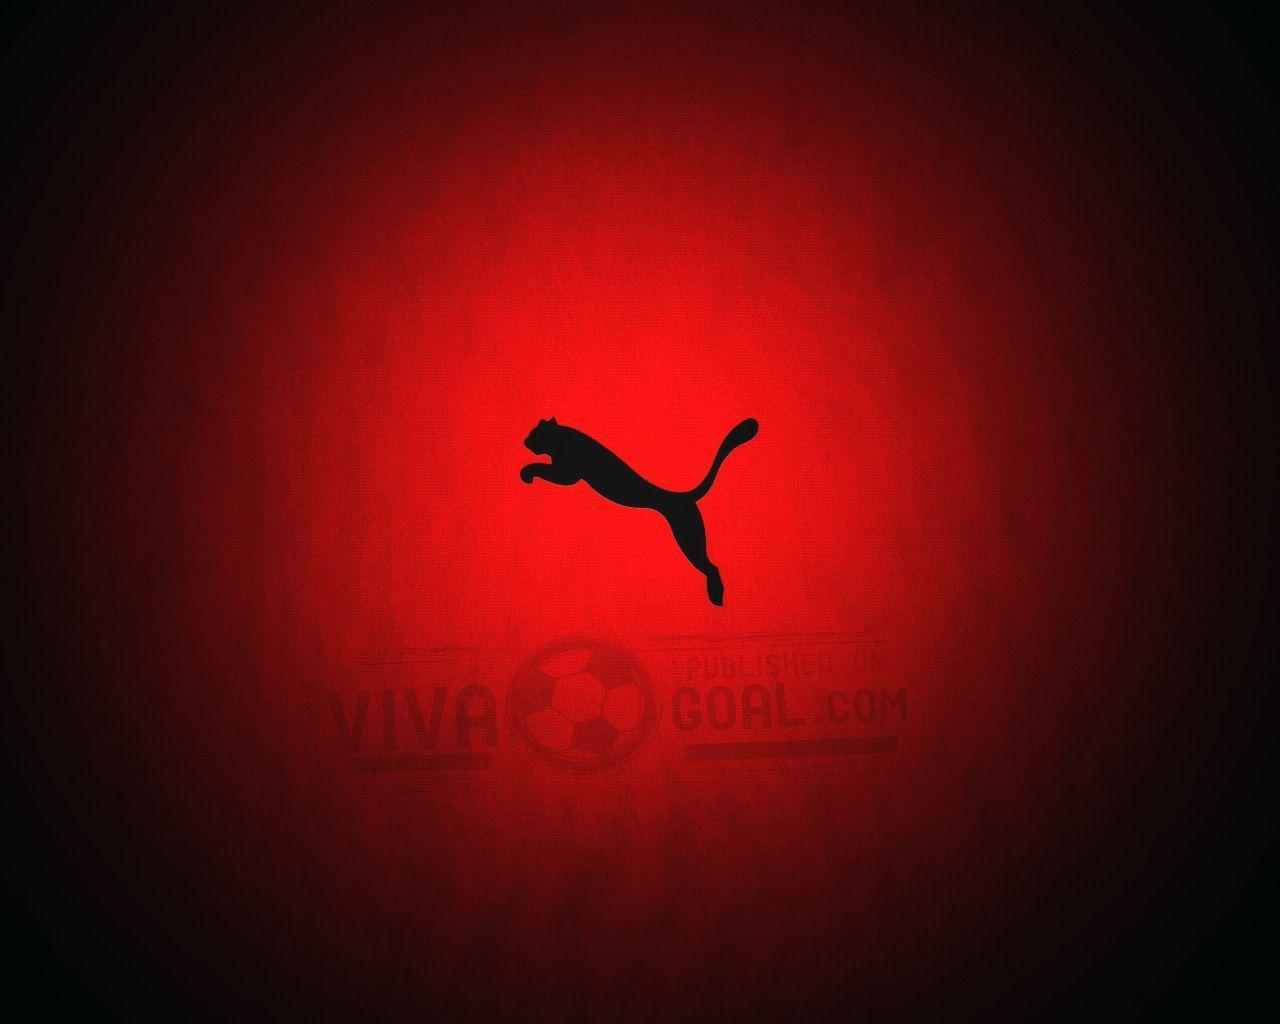 Puma Wallpapers | HD Wallpapers Base